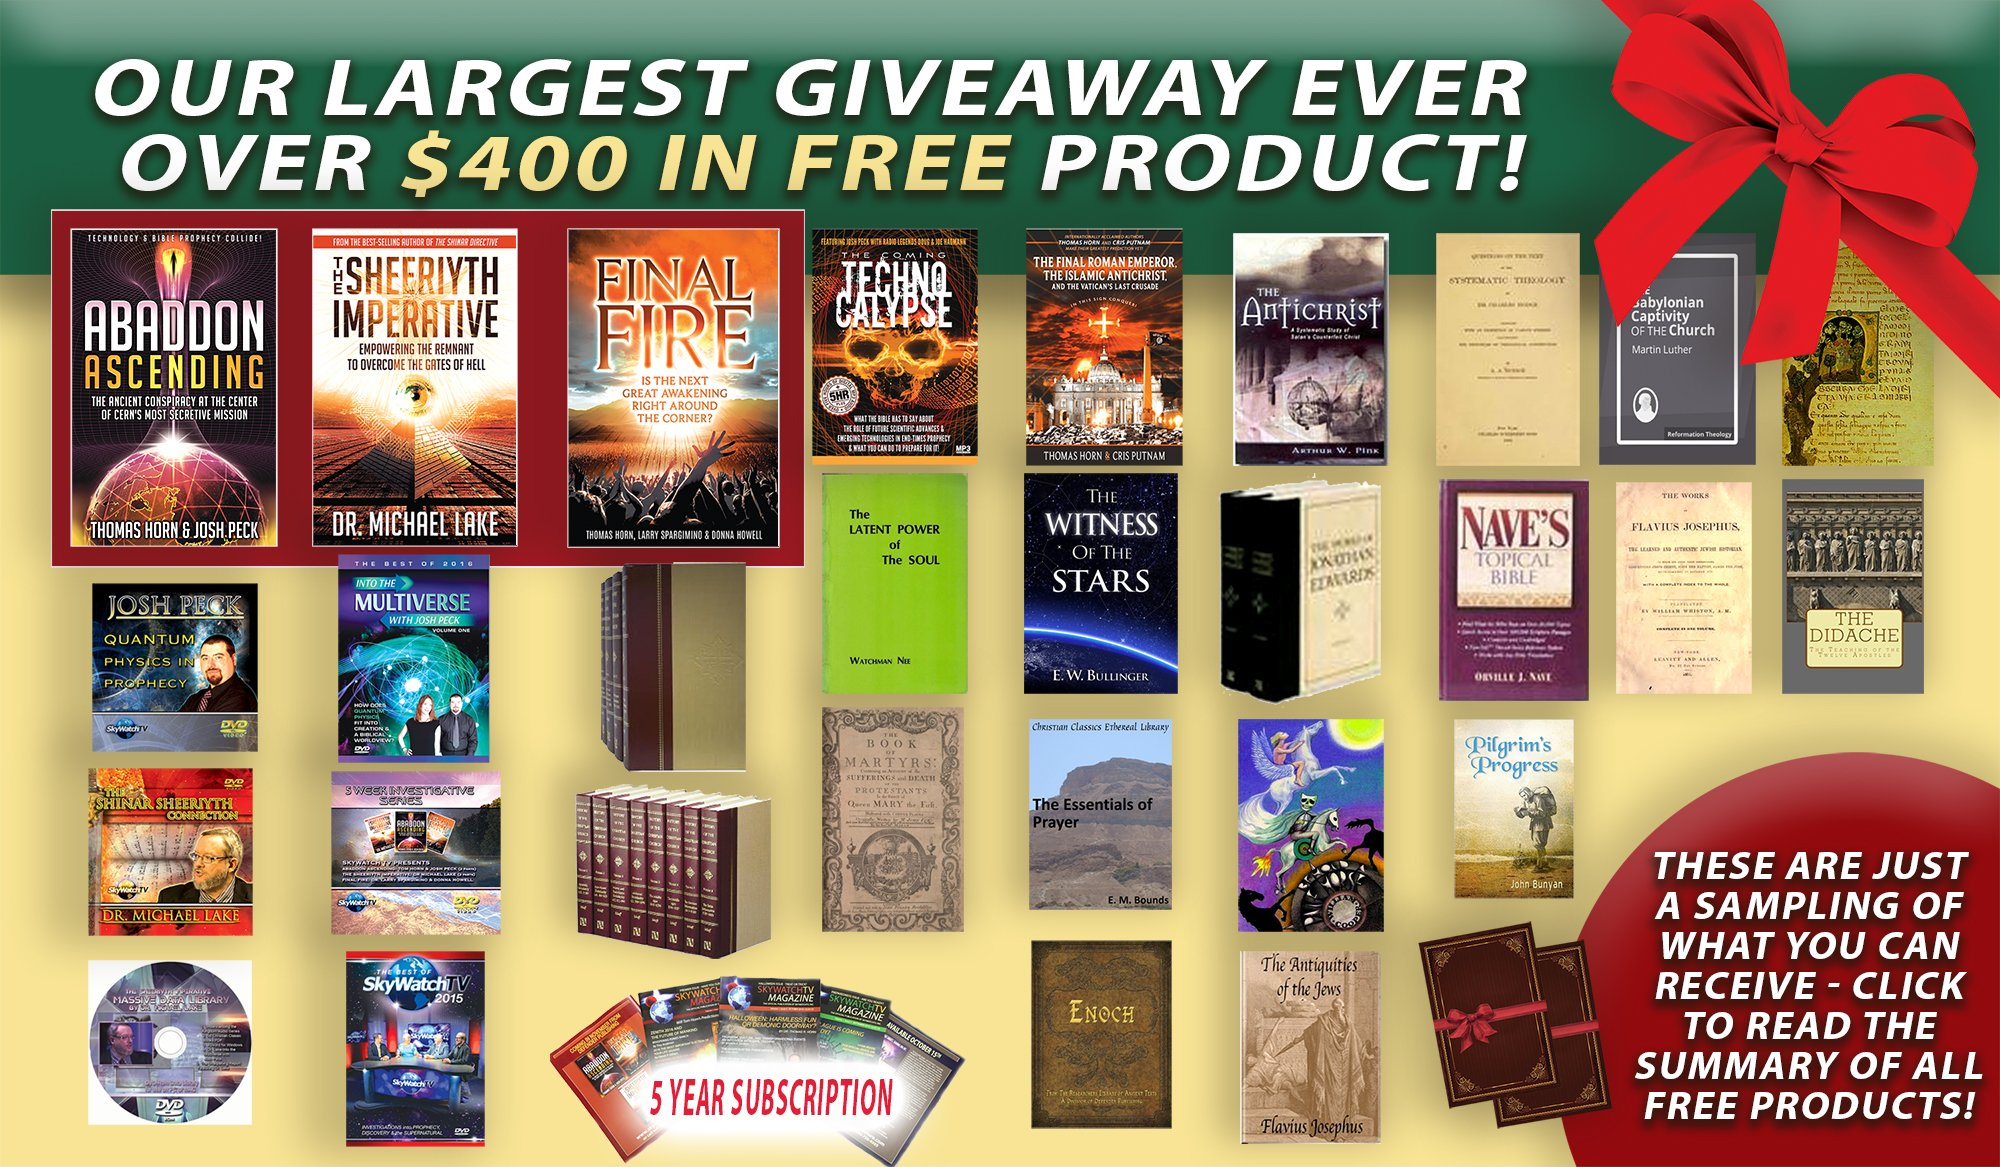 LAST CHANCE TO GET THE BIGGEST GIVEAWAY IN OUR HISTORY! OVER $400.00 IN MERCHANDISE!